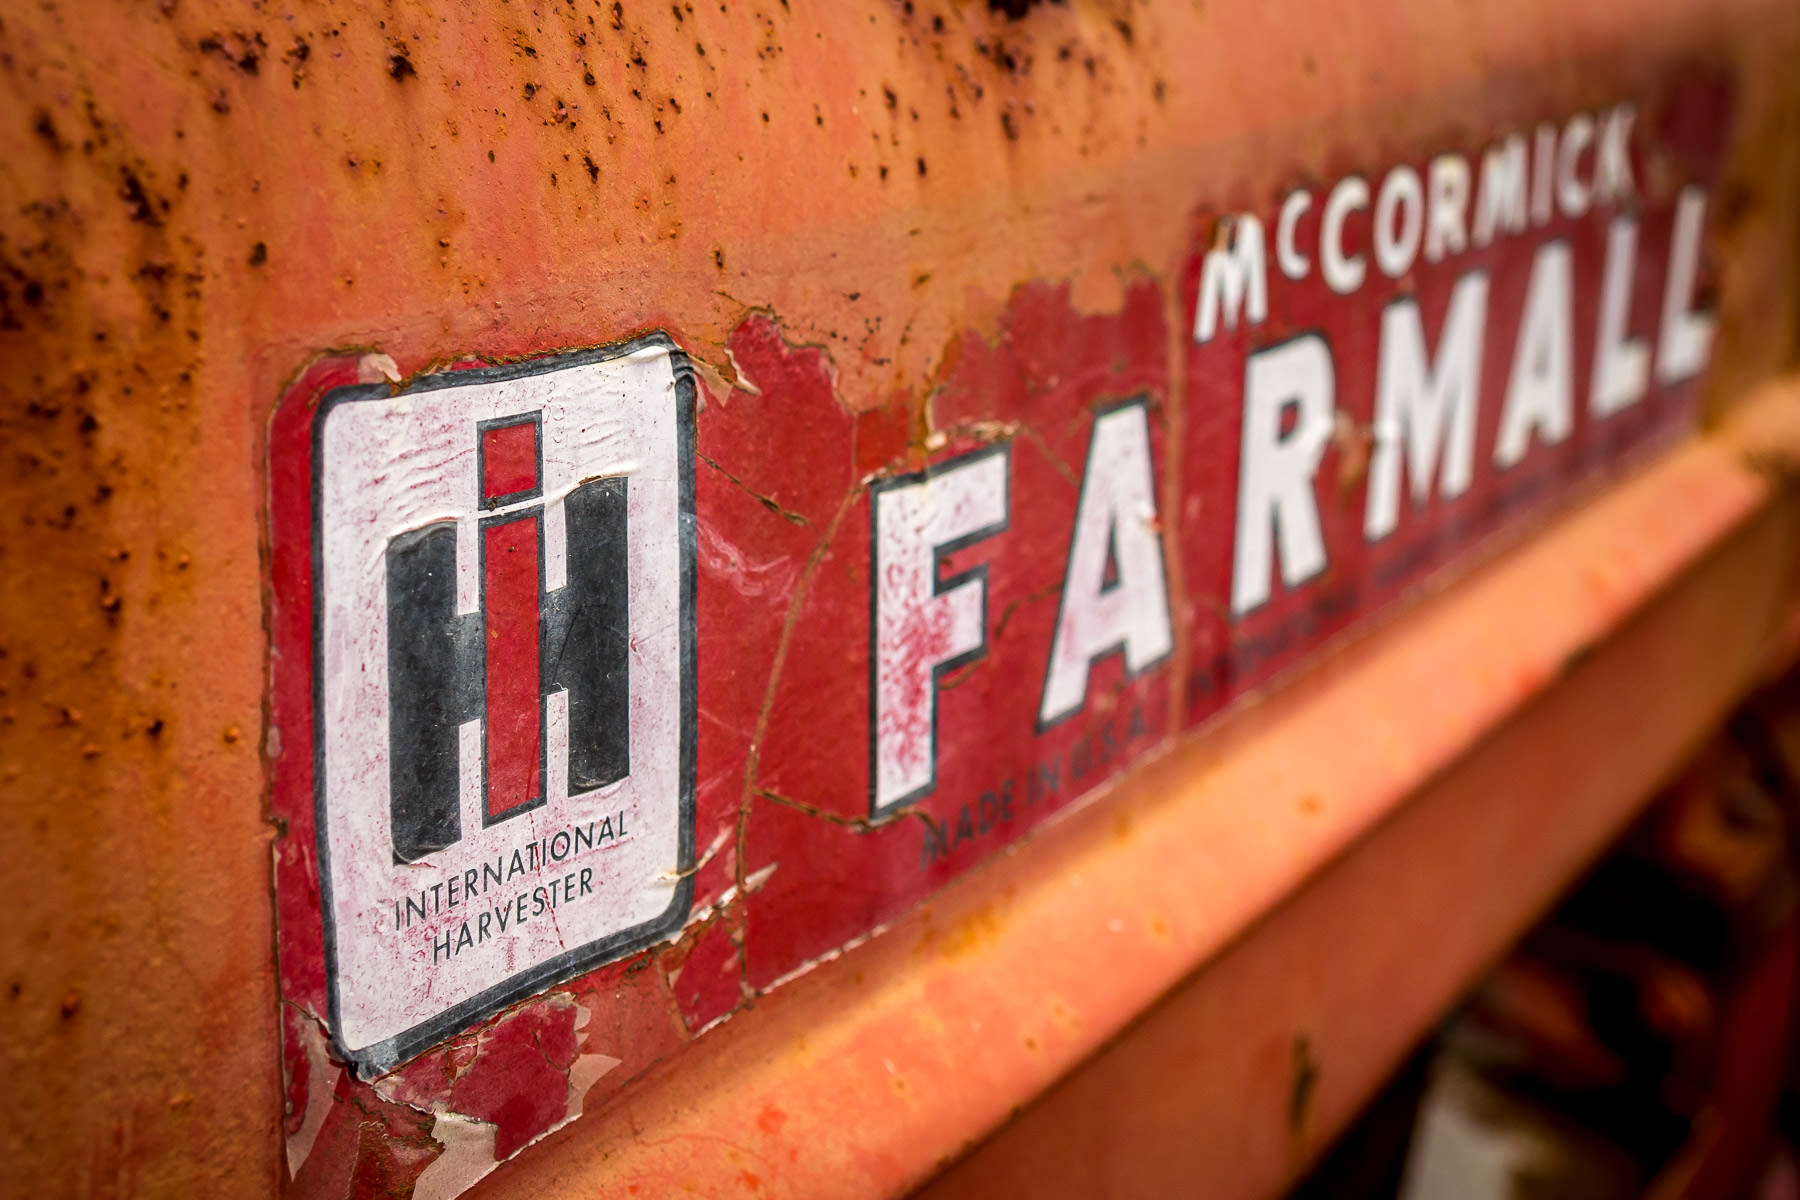 Detail of the cracked and peeling label of an International Harvester McCormick Farmall tractor, spotted at Moore Farms in Bullard, Texas.